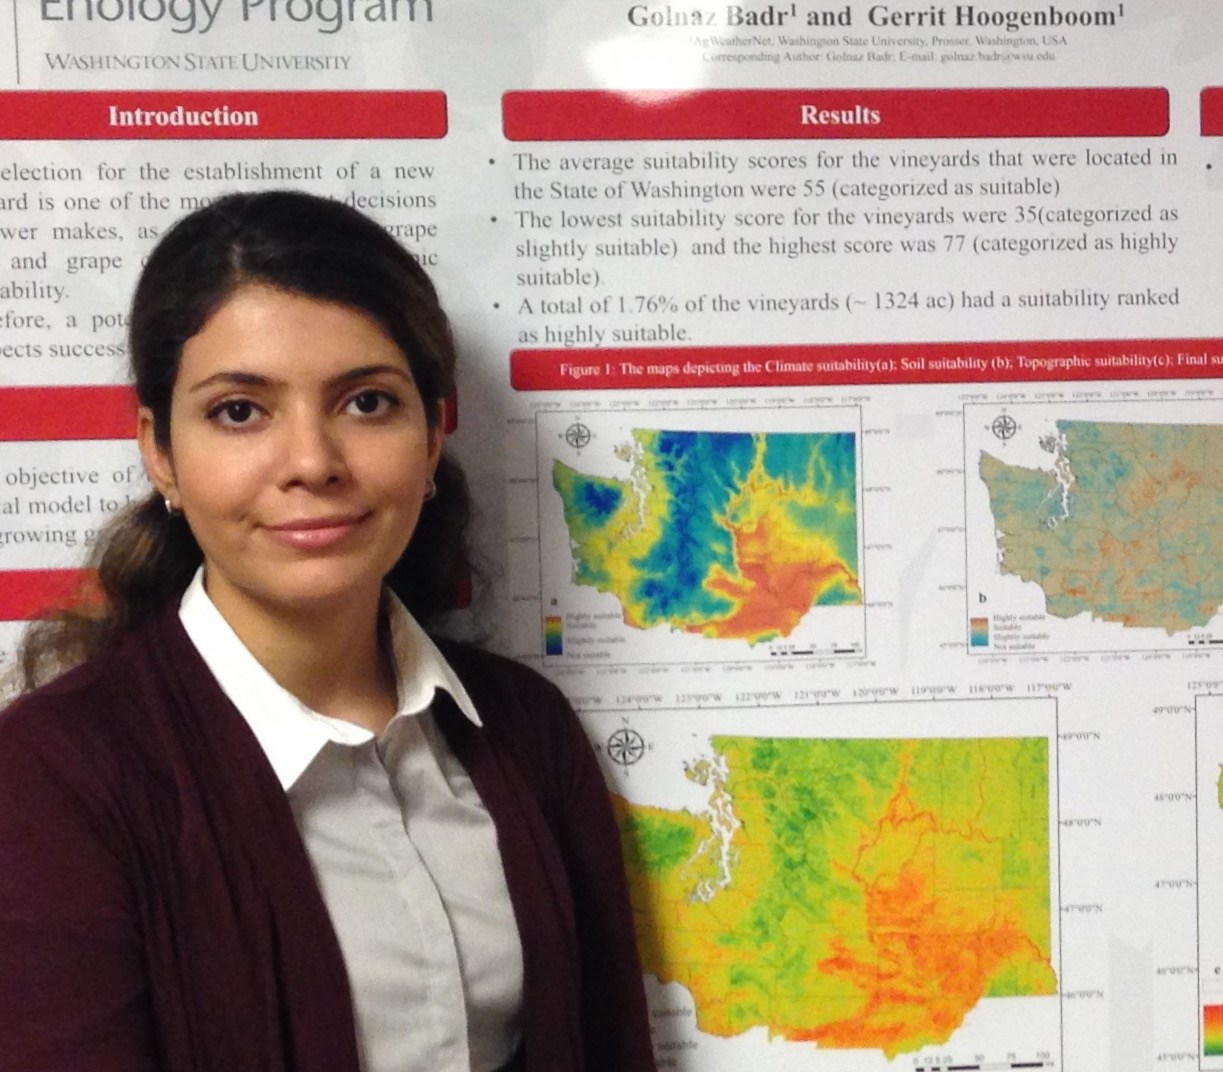 HD Decor Images » Award winning WSU research maps suitability of Washington vineyard     Golnaz Badr  WSU doctoral student of engineering  has combined Washington  soil  topography and